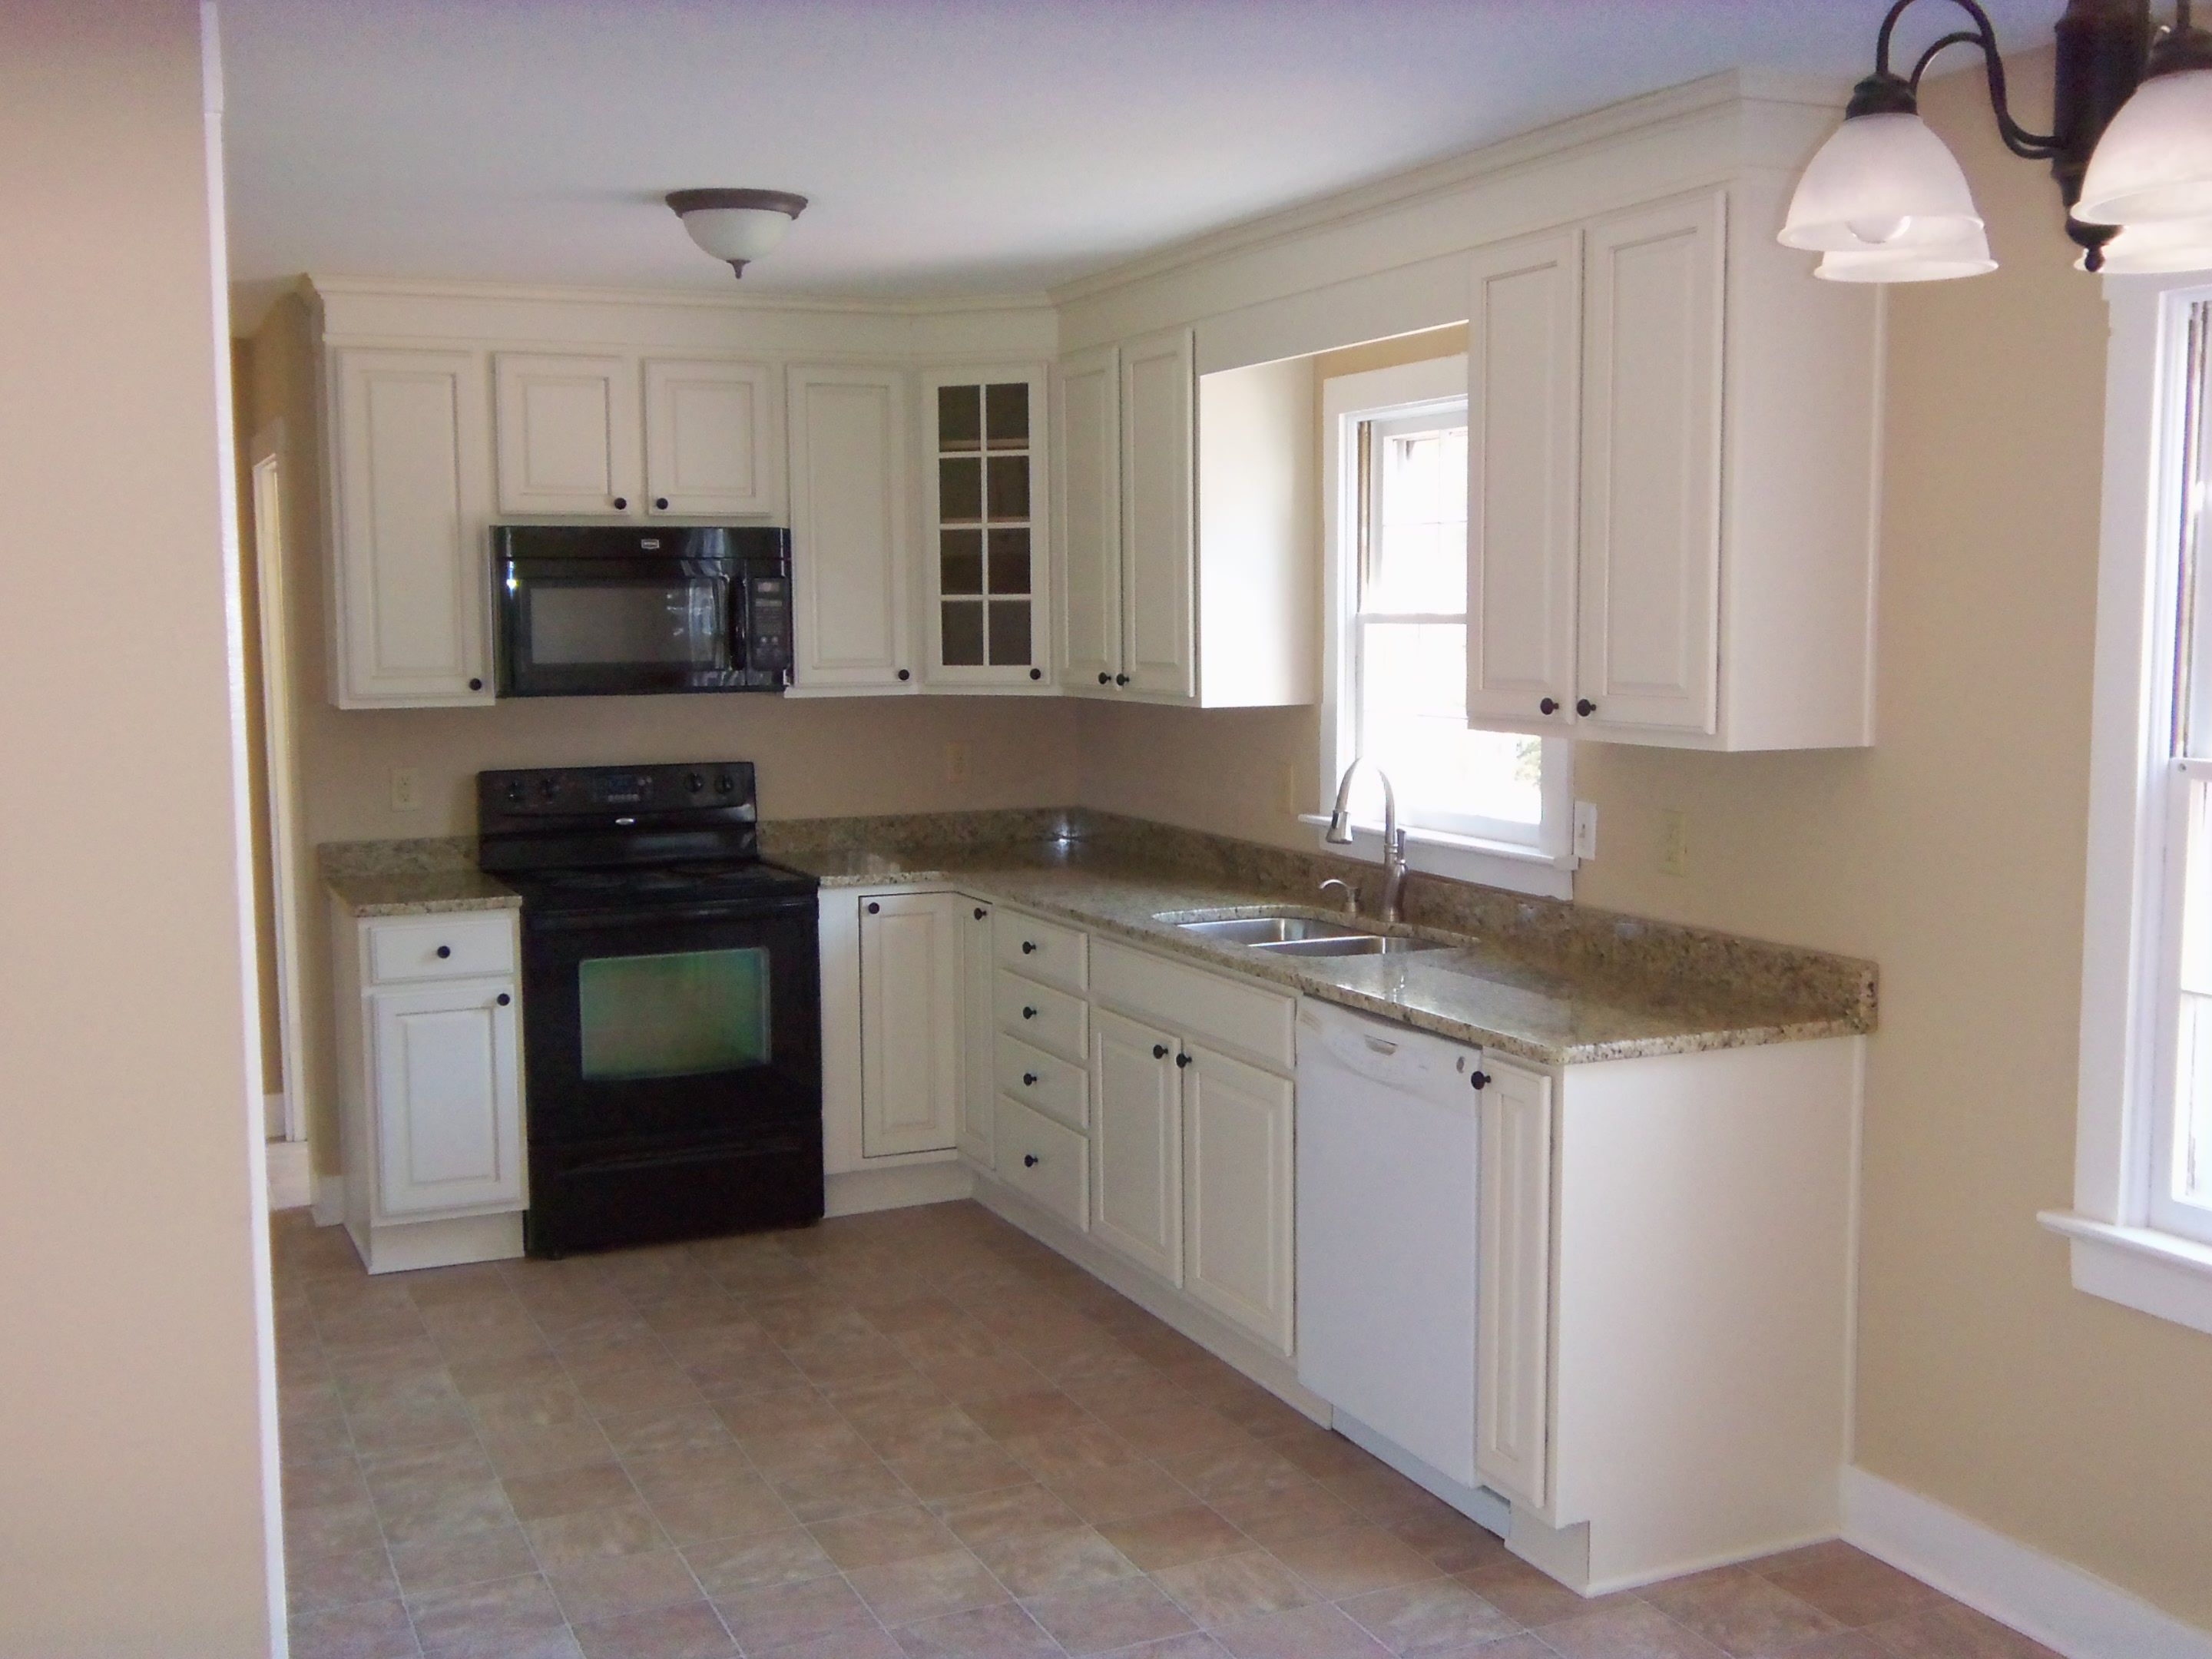 Stunning Simple Kitchen Design L Shape On Kitchen With Pb L Shaped Kitchen After Glen Allen Va